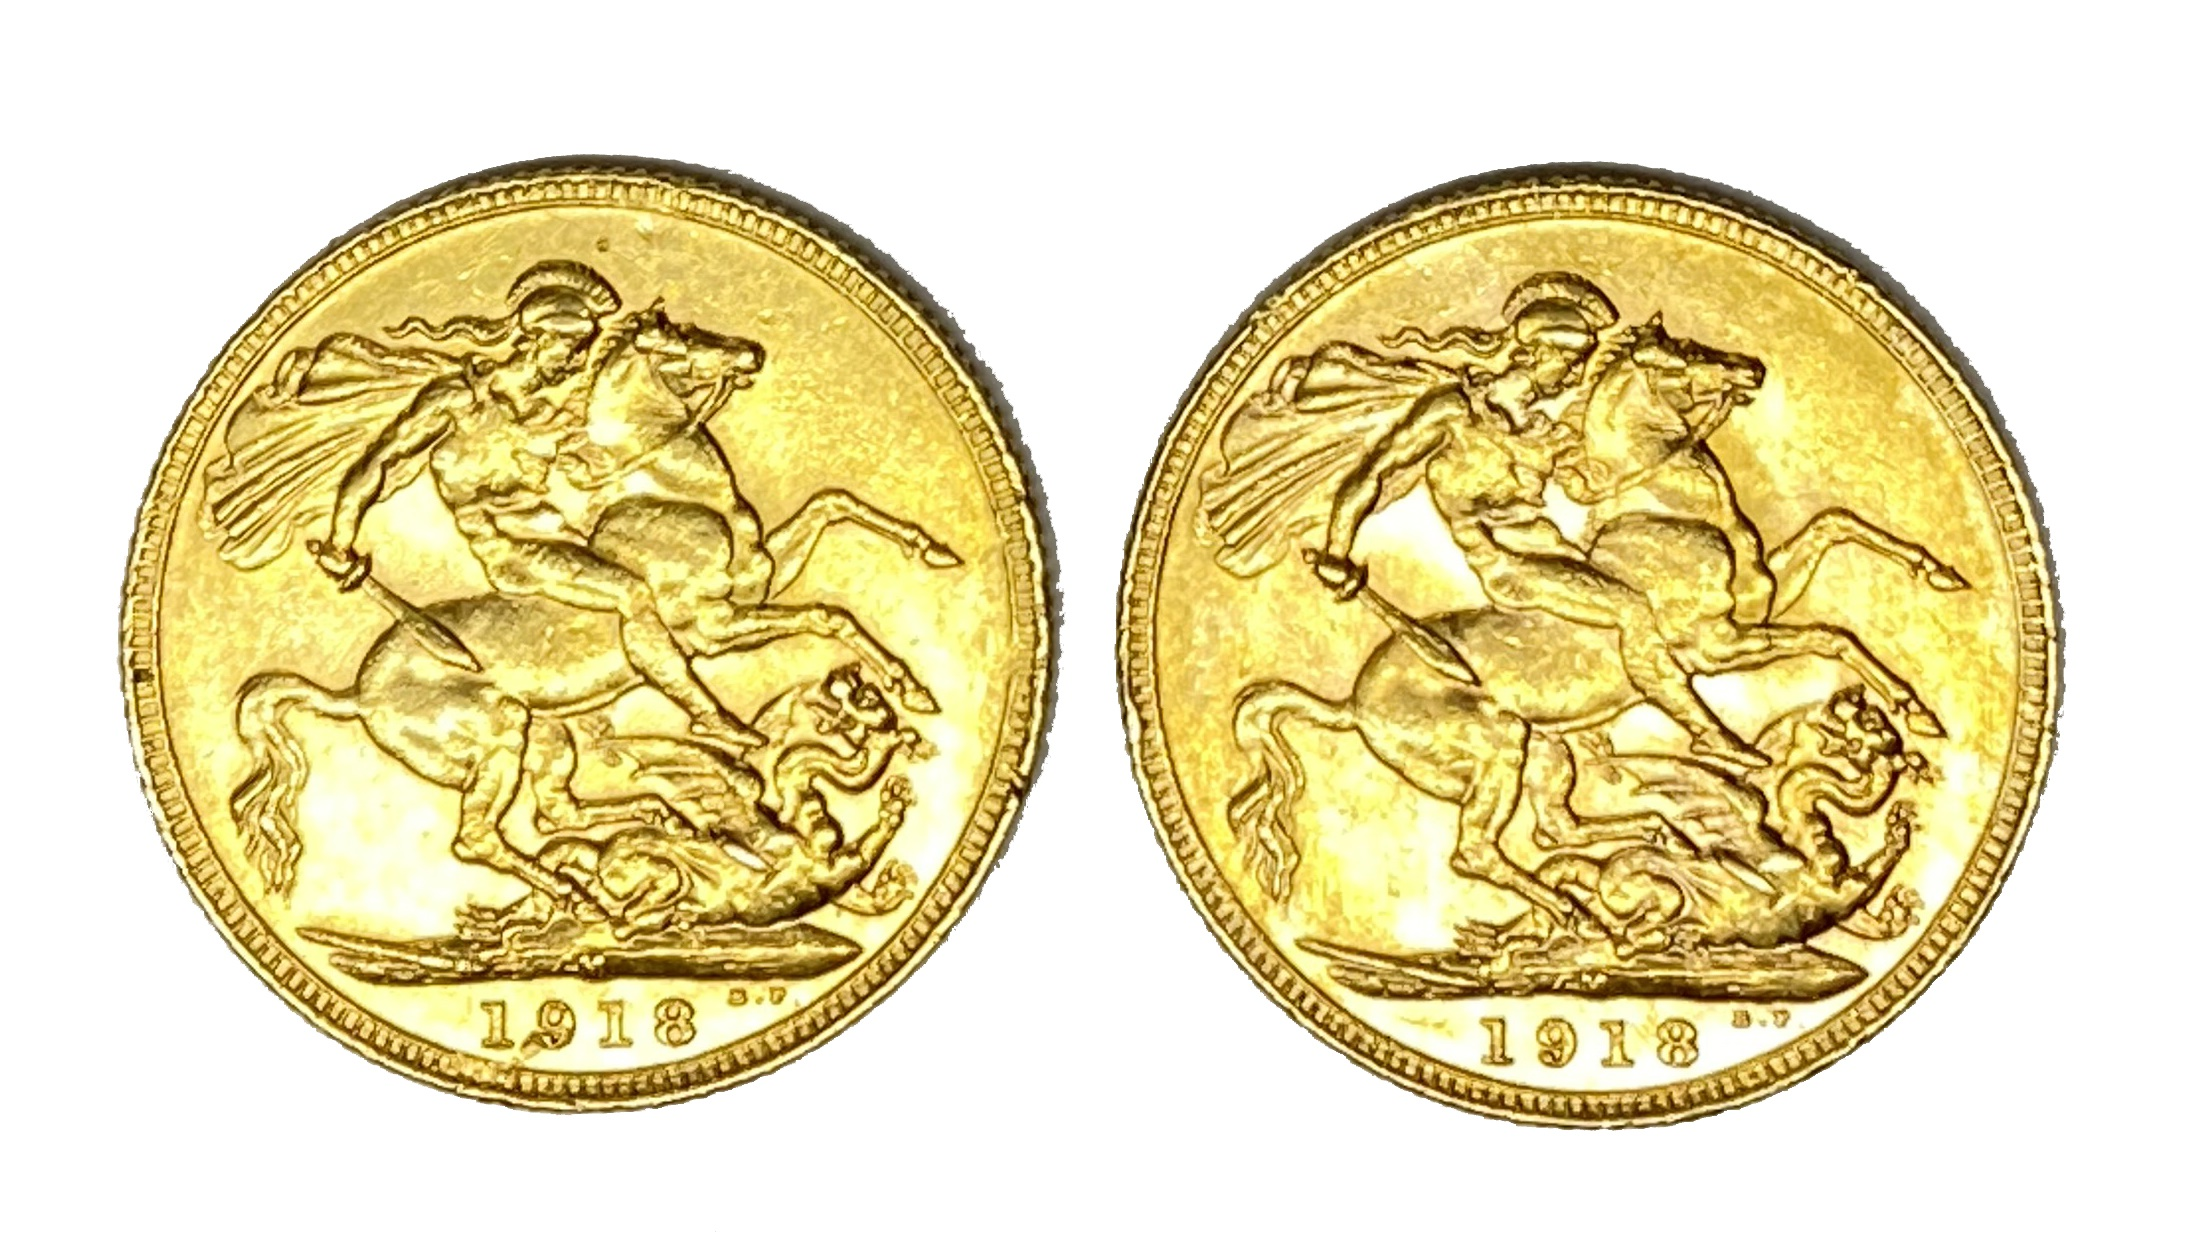 George V two gold Sovereign coins, 1918, Melbourne mint - Image 2 of 2